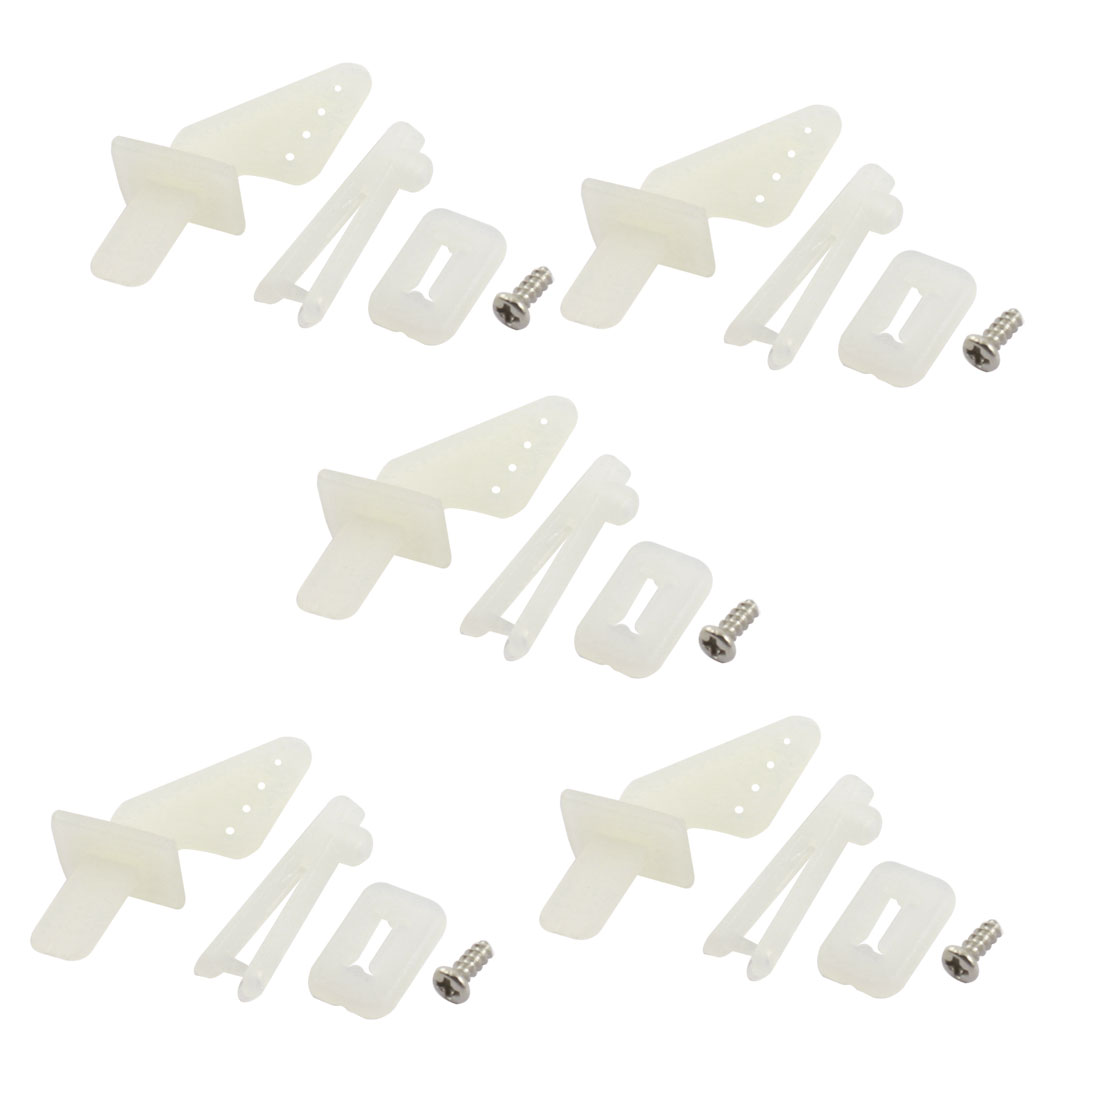 RC Model Aircraft White Nylon Rudder Angle Quick Adjust Rocker 5Set